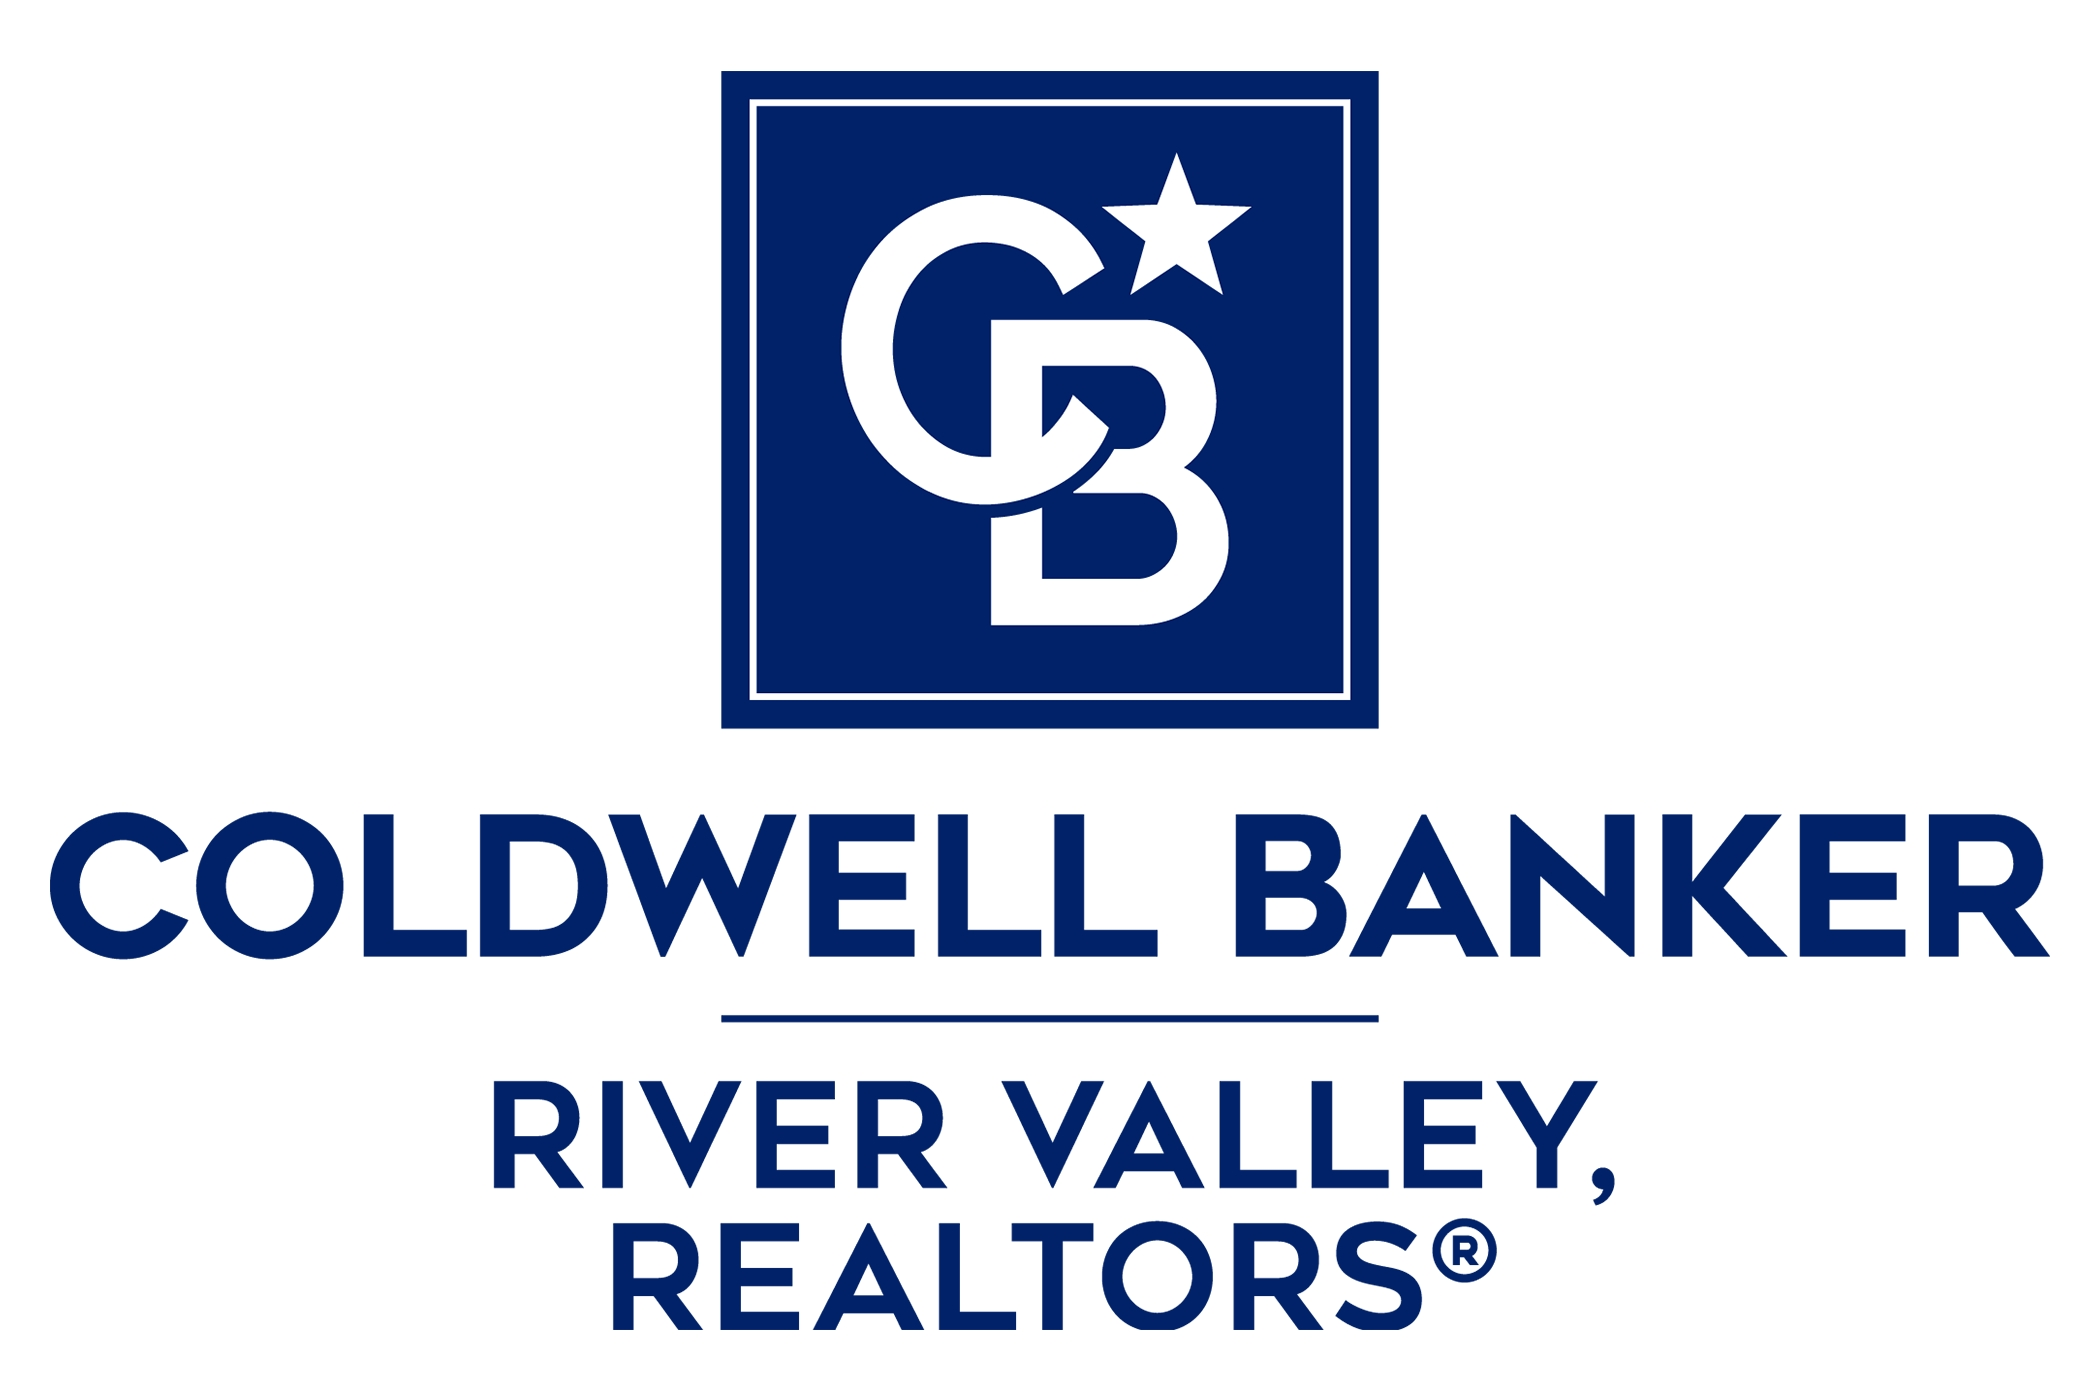 Steve Johnson - Coldwell Banker River Valley Realtors Logo